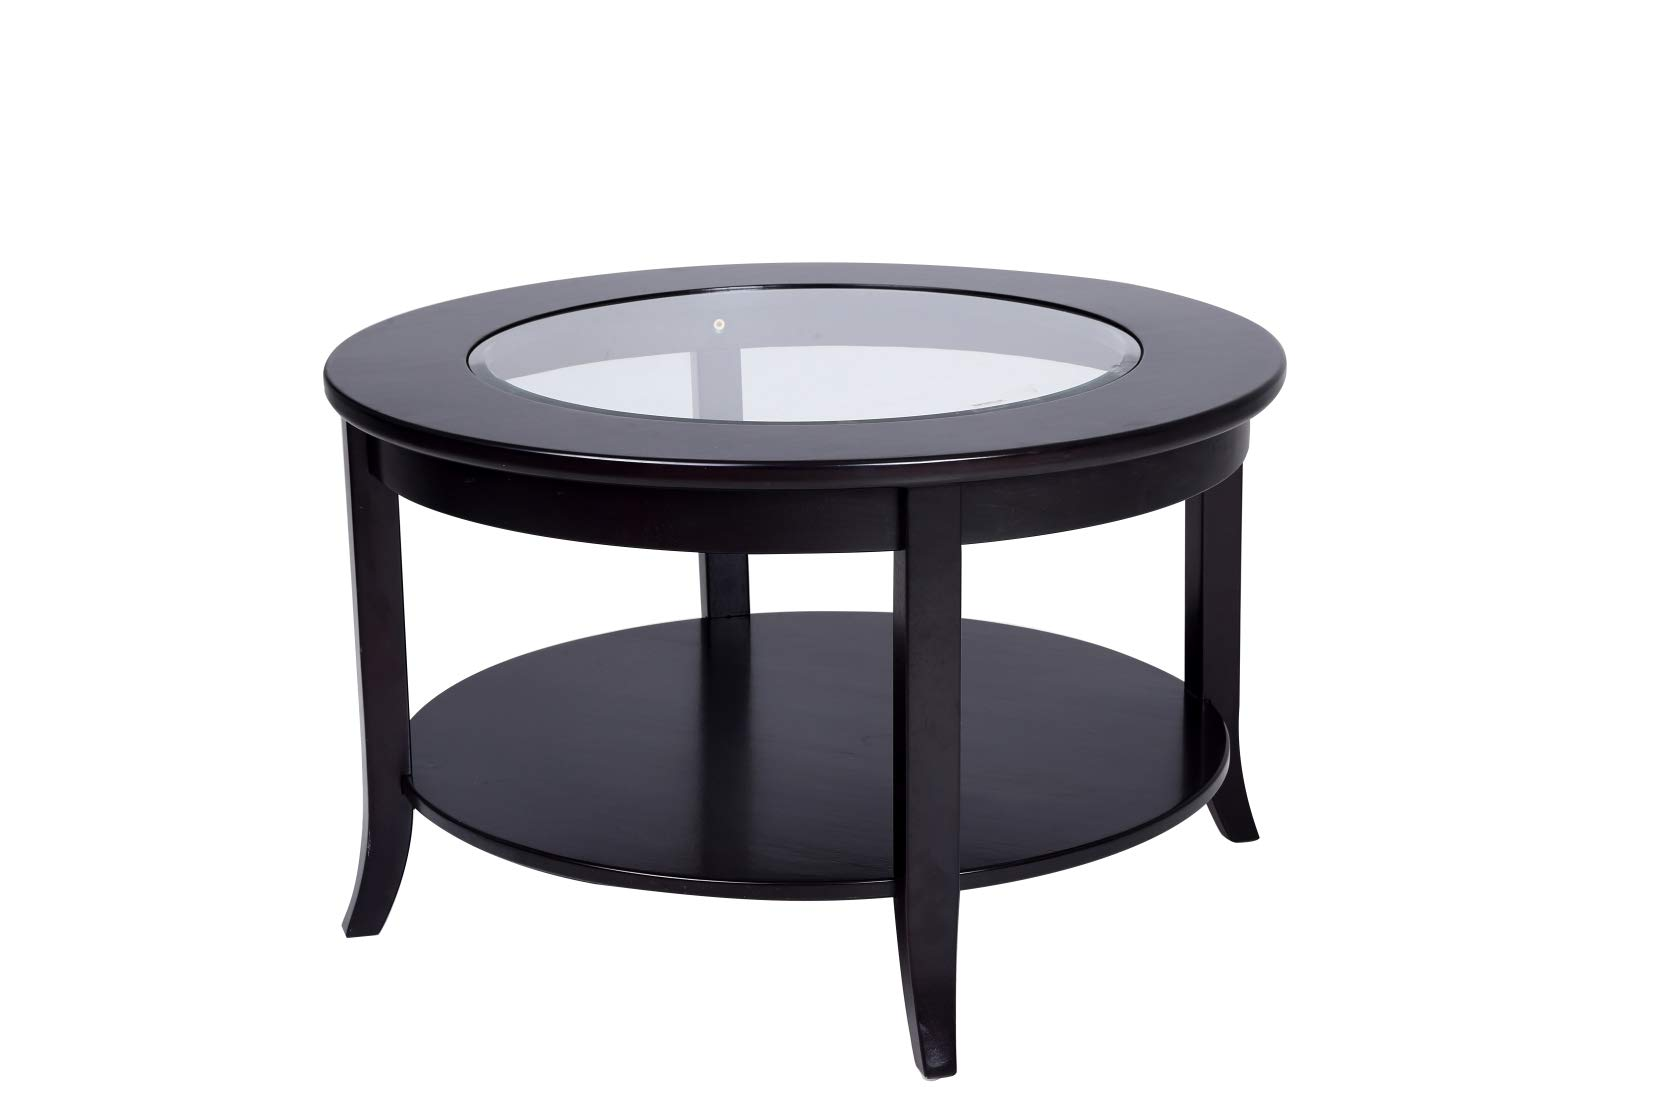 Phoenix Home Coventry Round Wood Coffee Table with Glass Inlay, Earthy Espresso by Phoenix Home